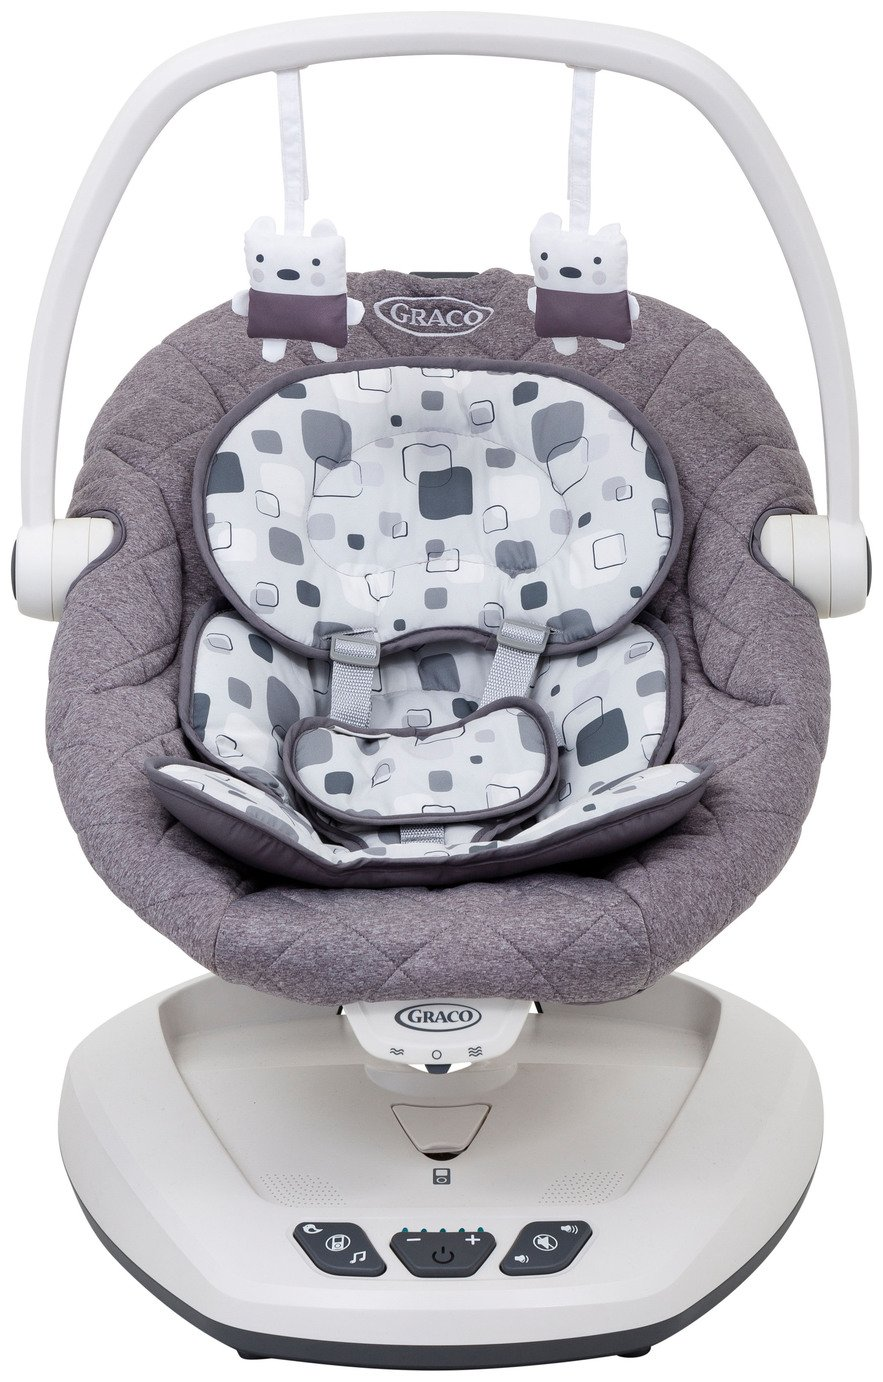 Graco Move with Me Soother Bouncer - Block Party